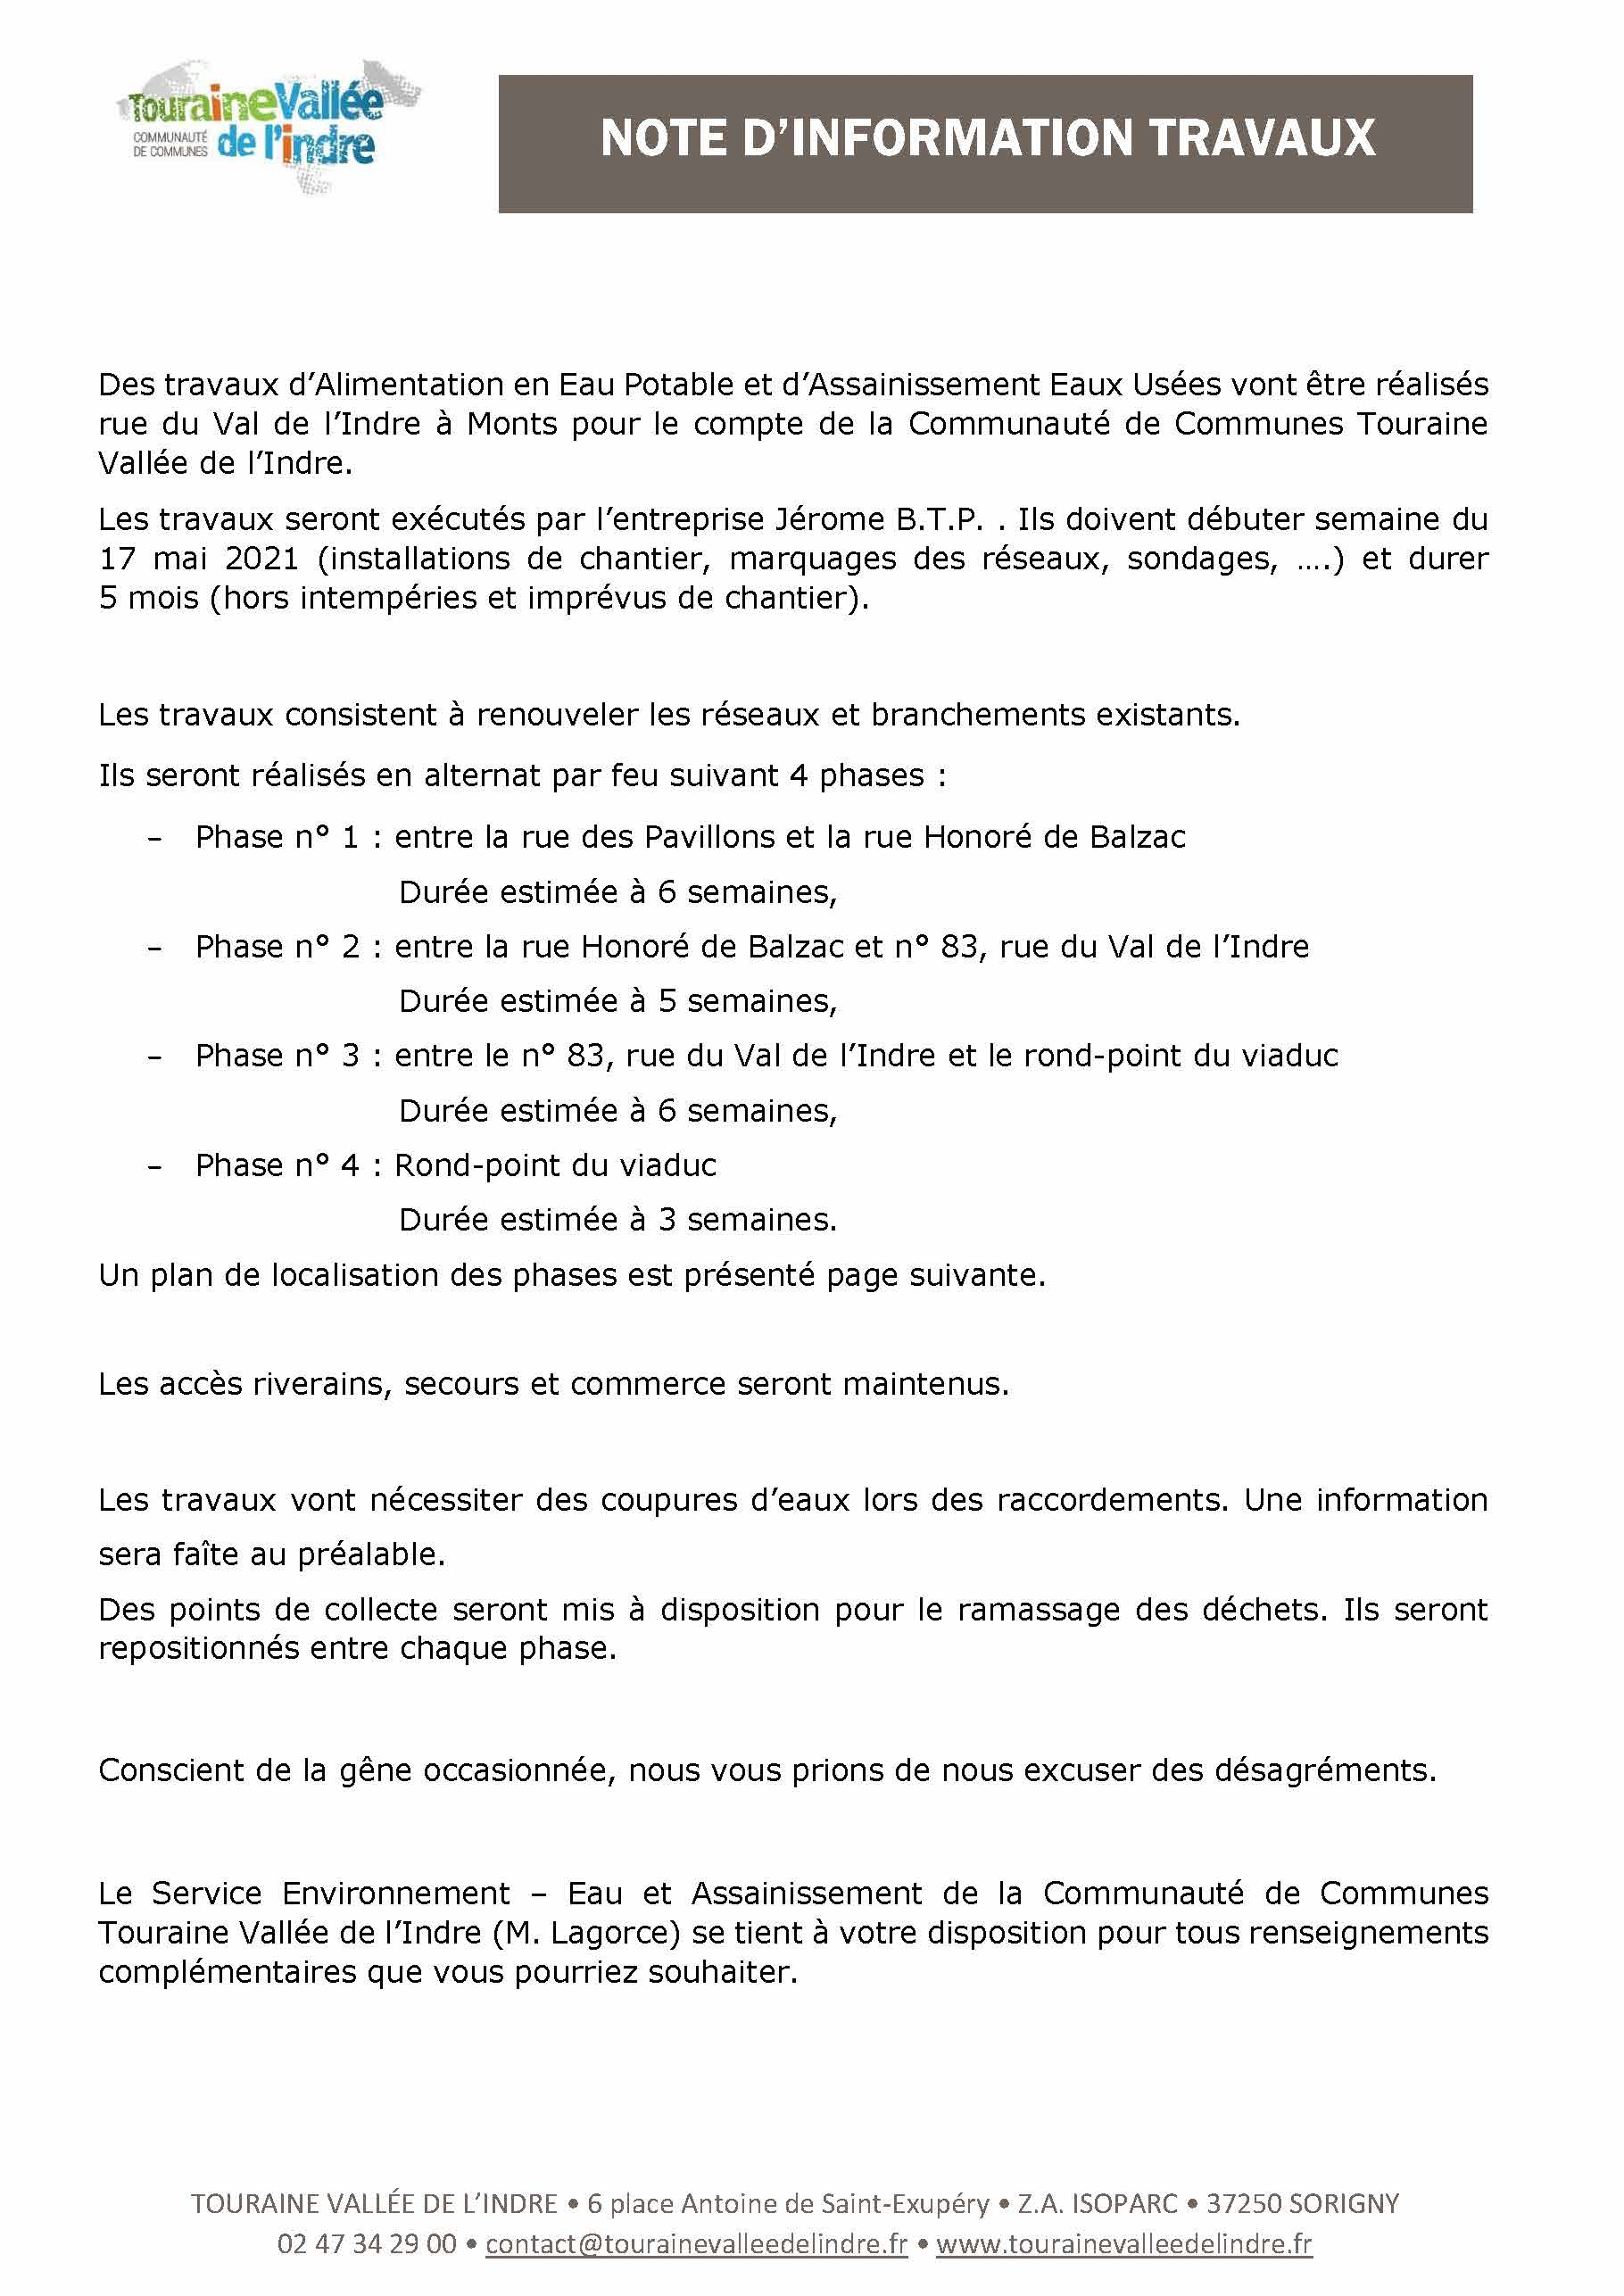 Notes_Informations_Val_Indre_Page_1.jpg